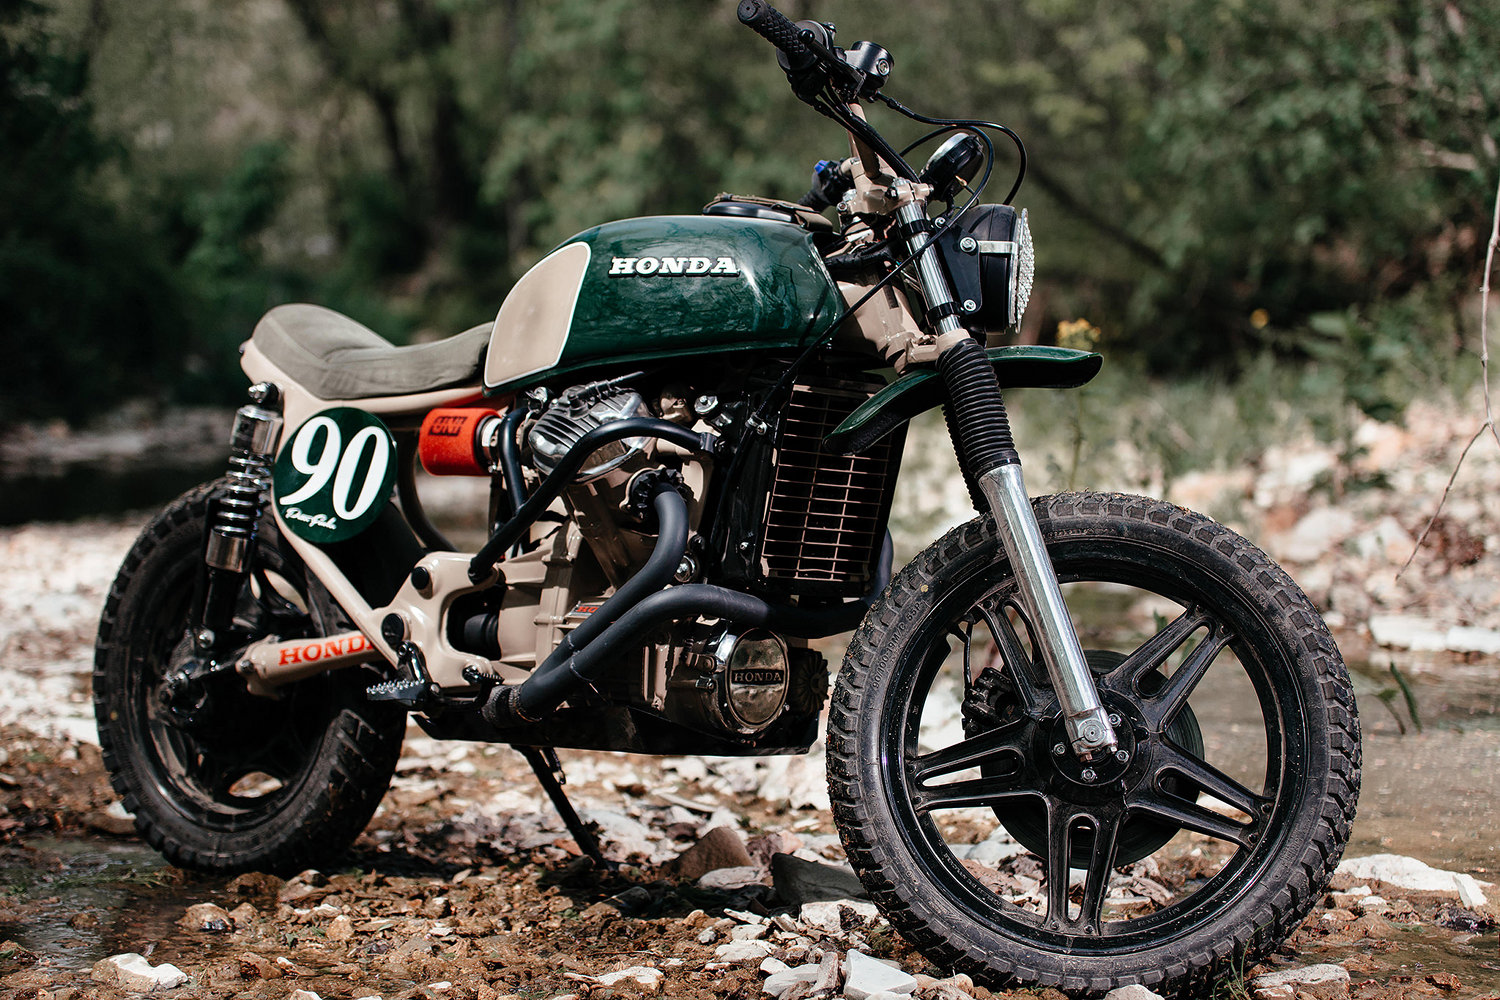 Were Thrilled To Present Another Build From Bj English Of Brick House Builds Bjs Previous A CX500 Tracker Inspired By The Two Stroke Honda